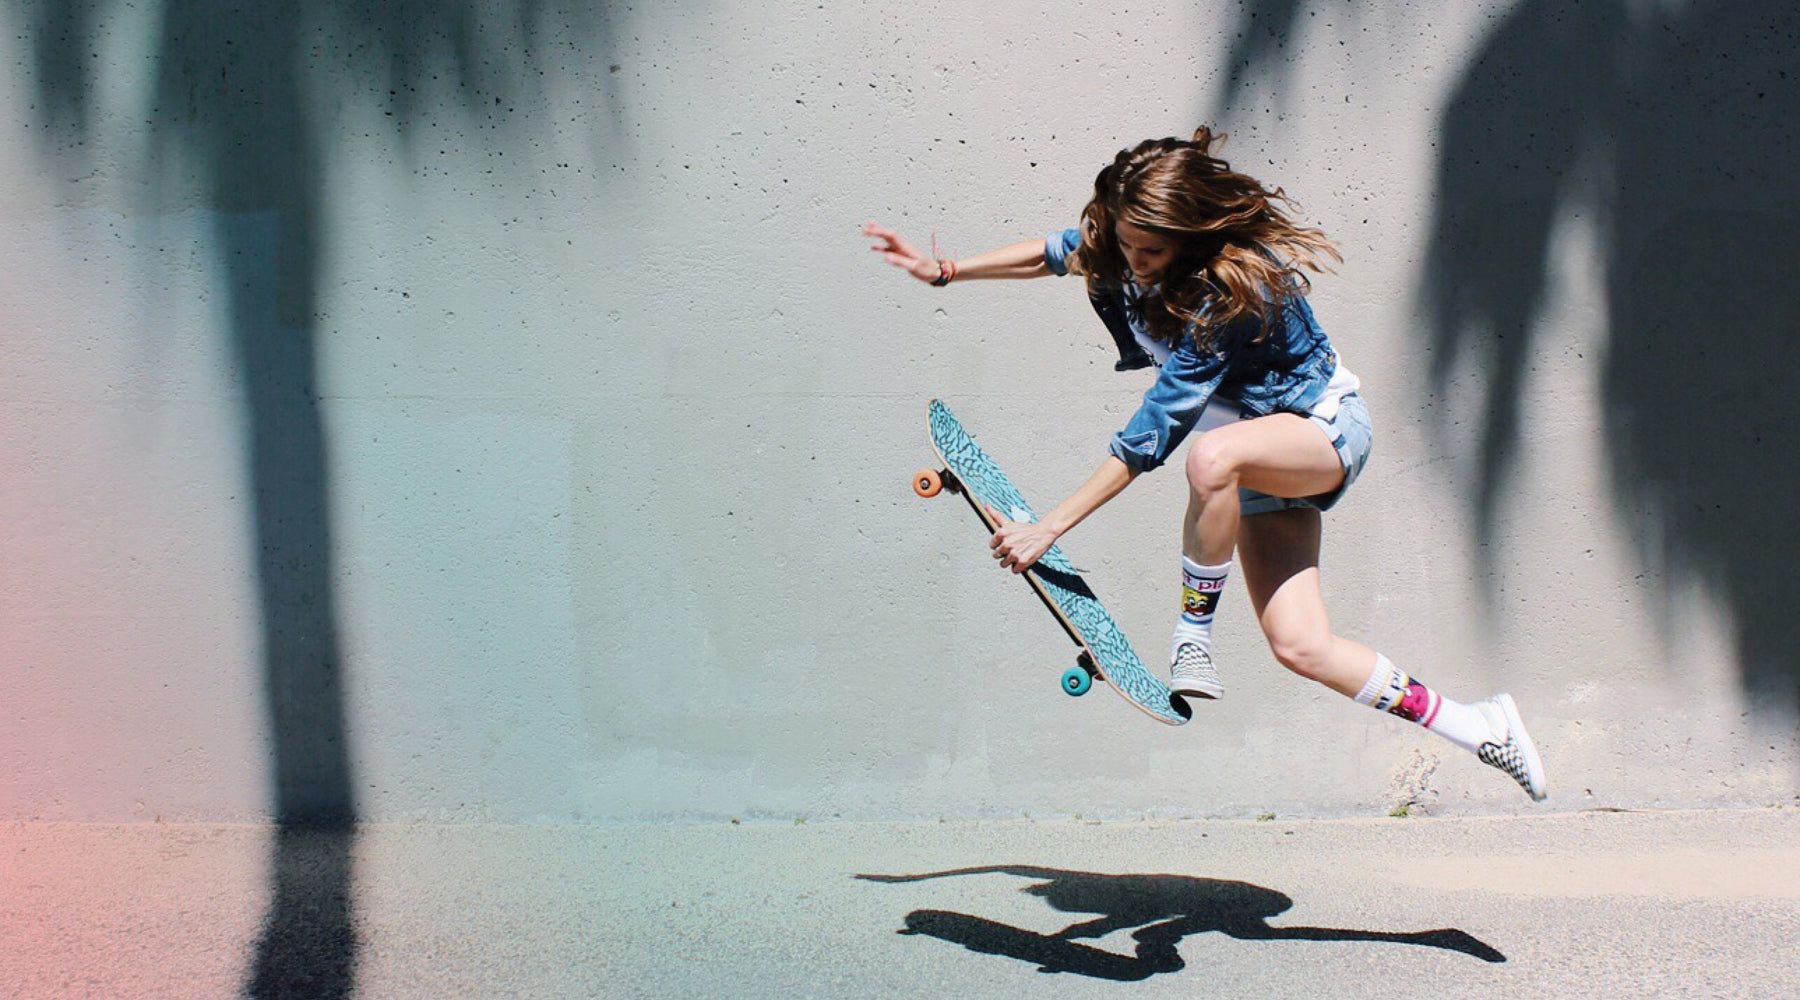 Sierra Prescott doing a Boneless in California